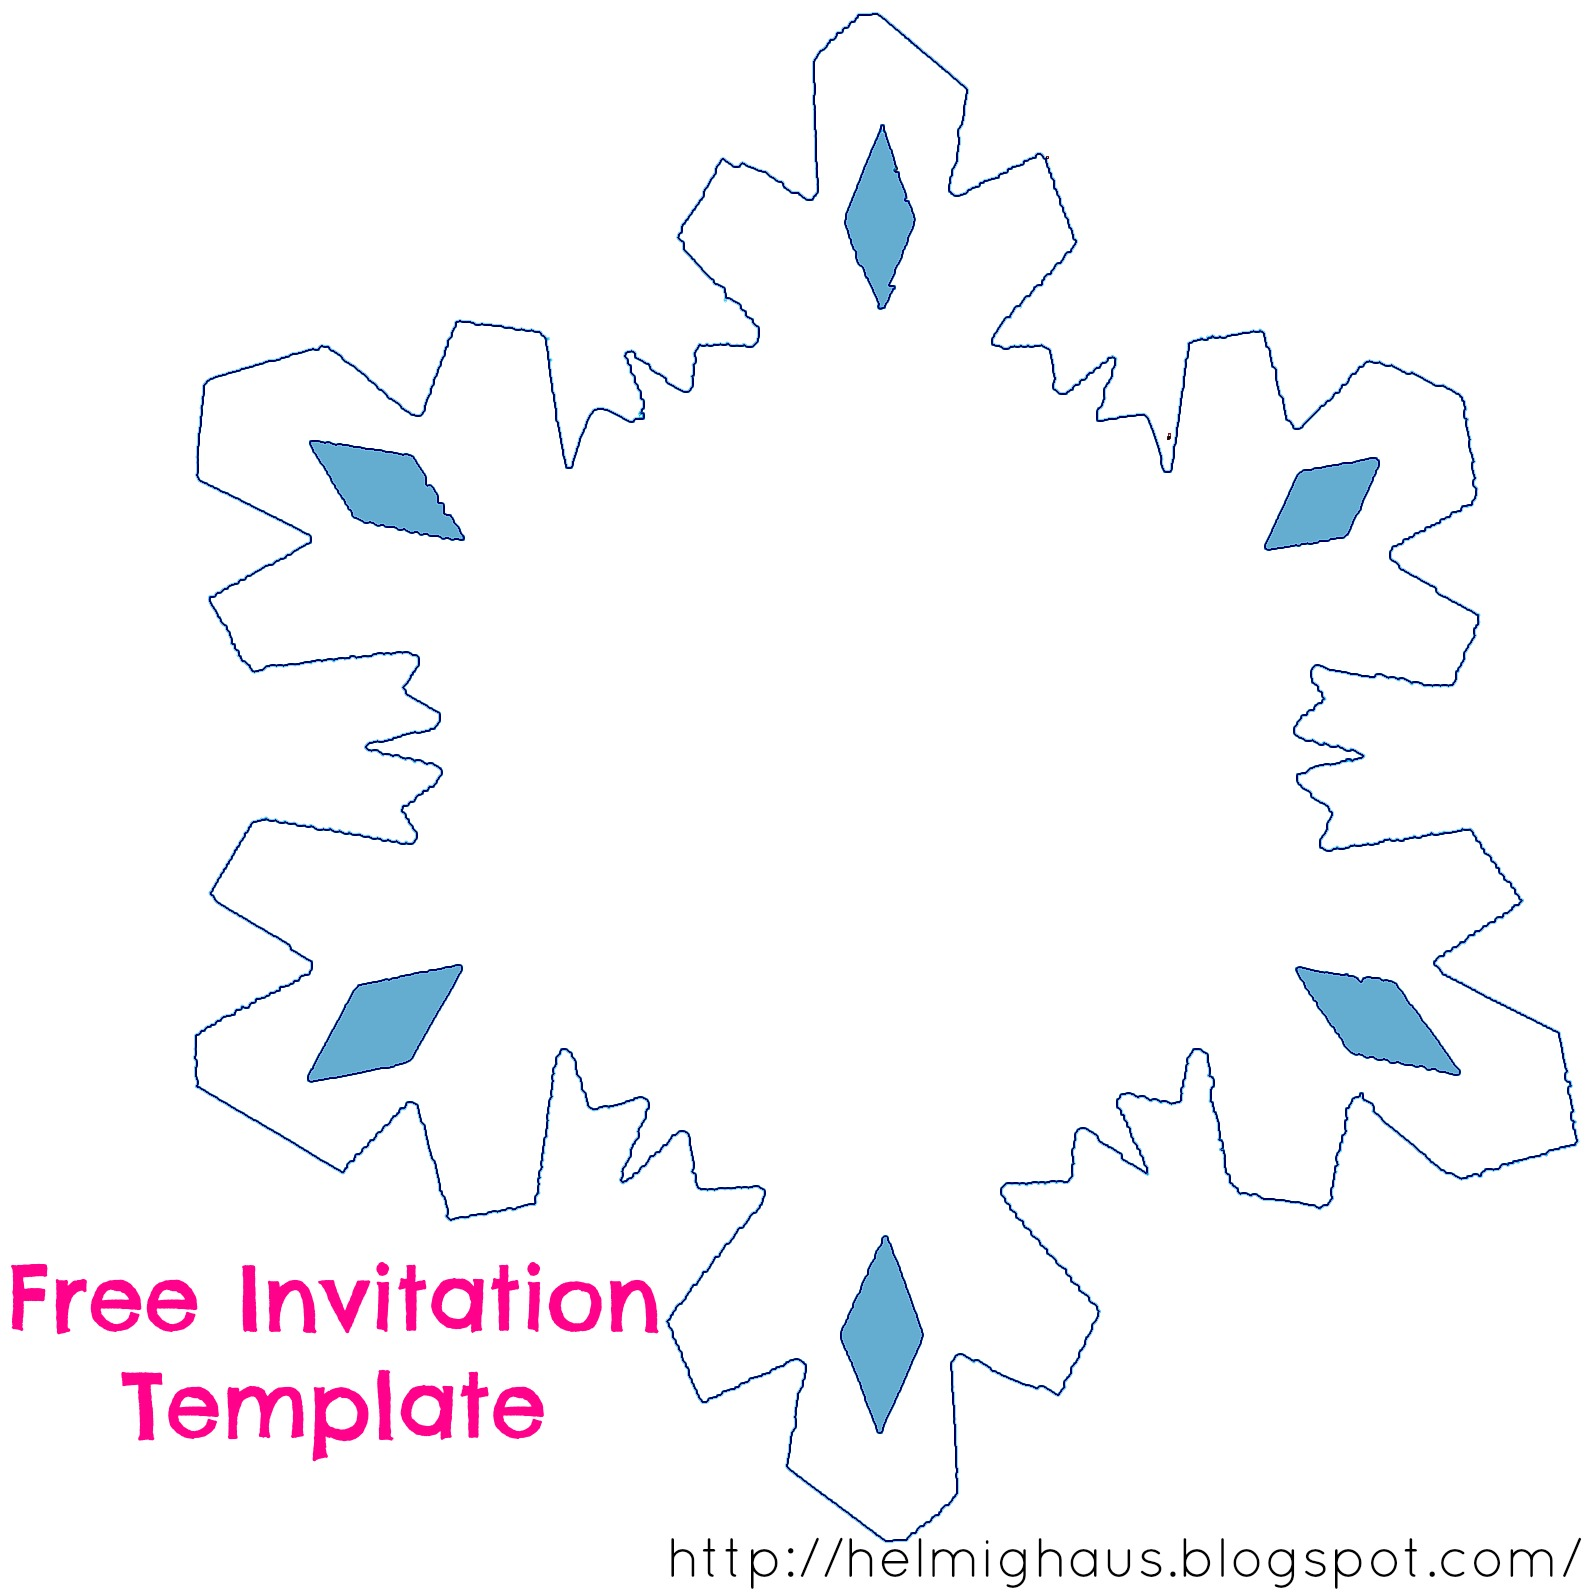 Helmighaus november 2014 blank snowflake template for invitations planning a quinceaera party creating the save the date solutioingenieria Image collections